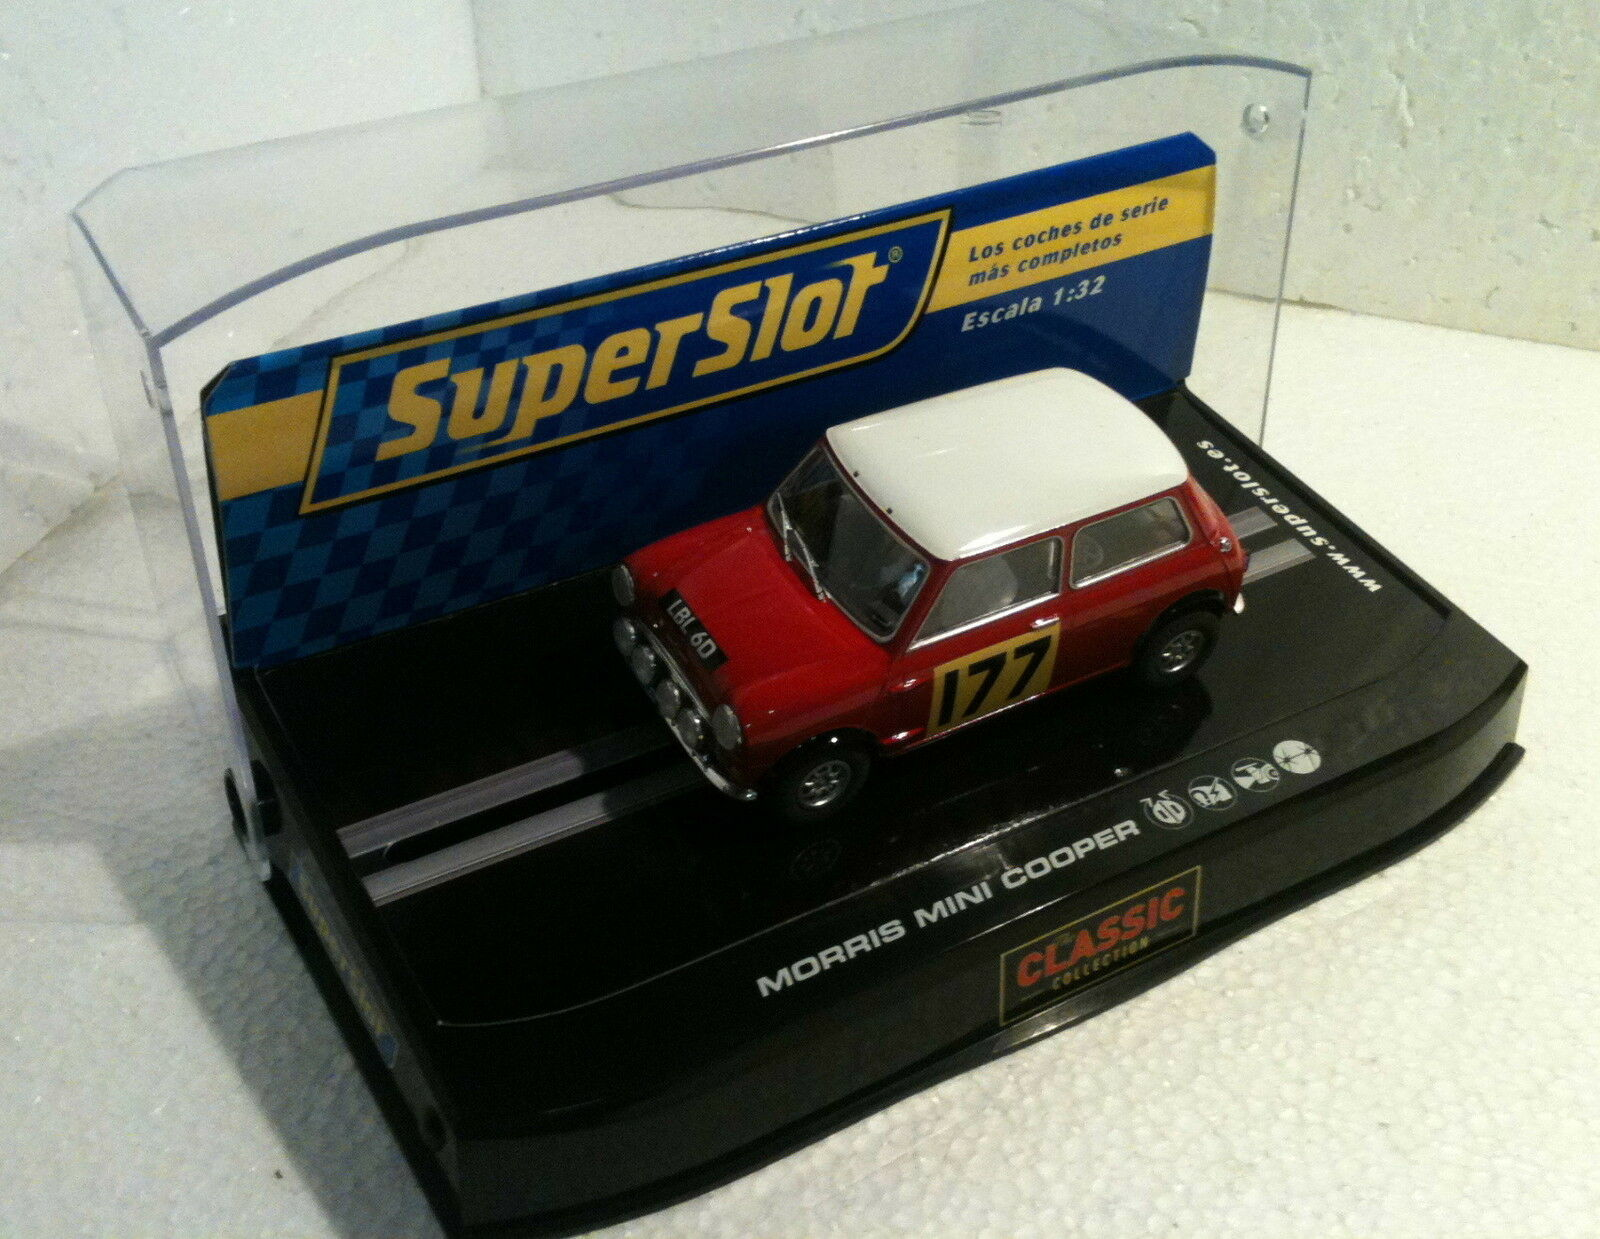 Qq H2807 SUPERSLOT MINI COOPER CLASSIC RALLY MONTE CARLO 67 Scalextric UK